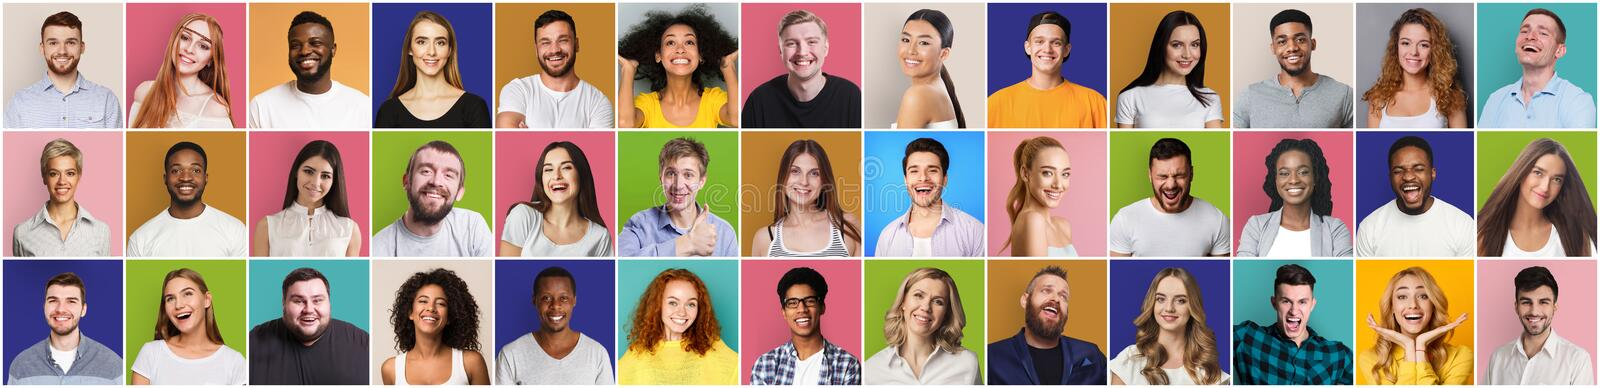 Collage of smiling and happy multiethnic people royalty free stock photos